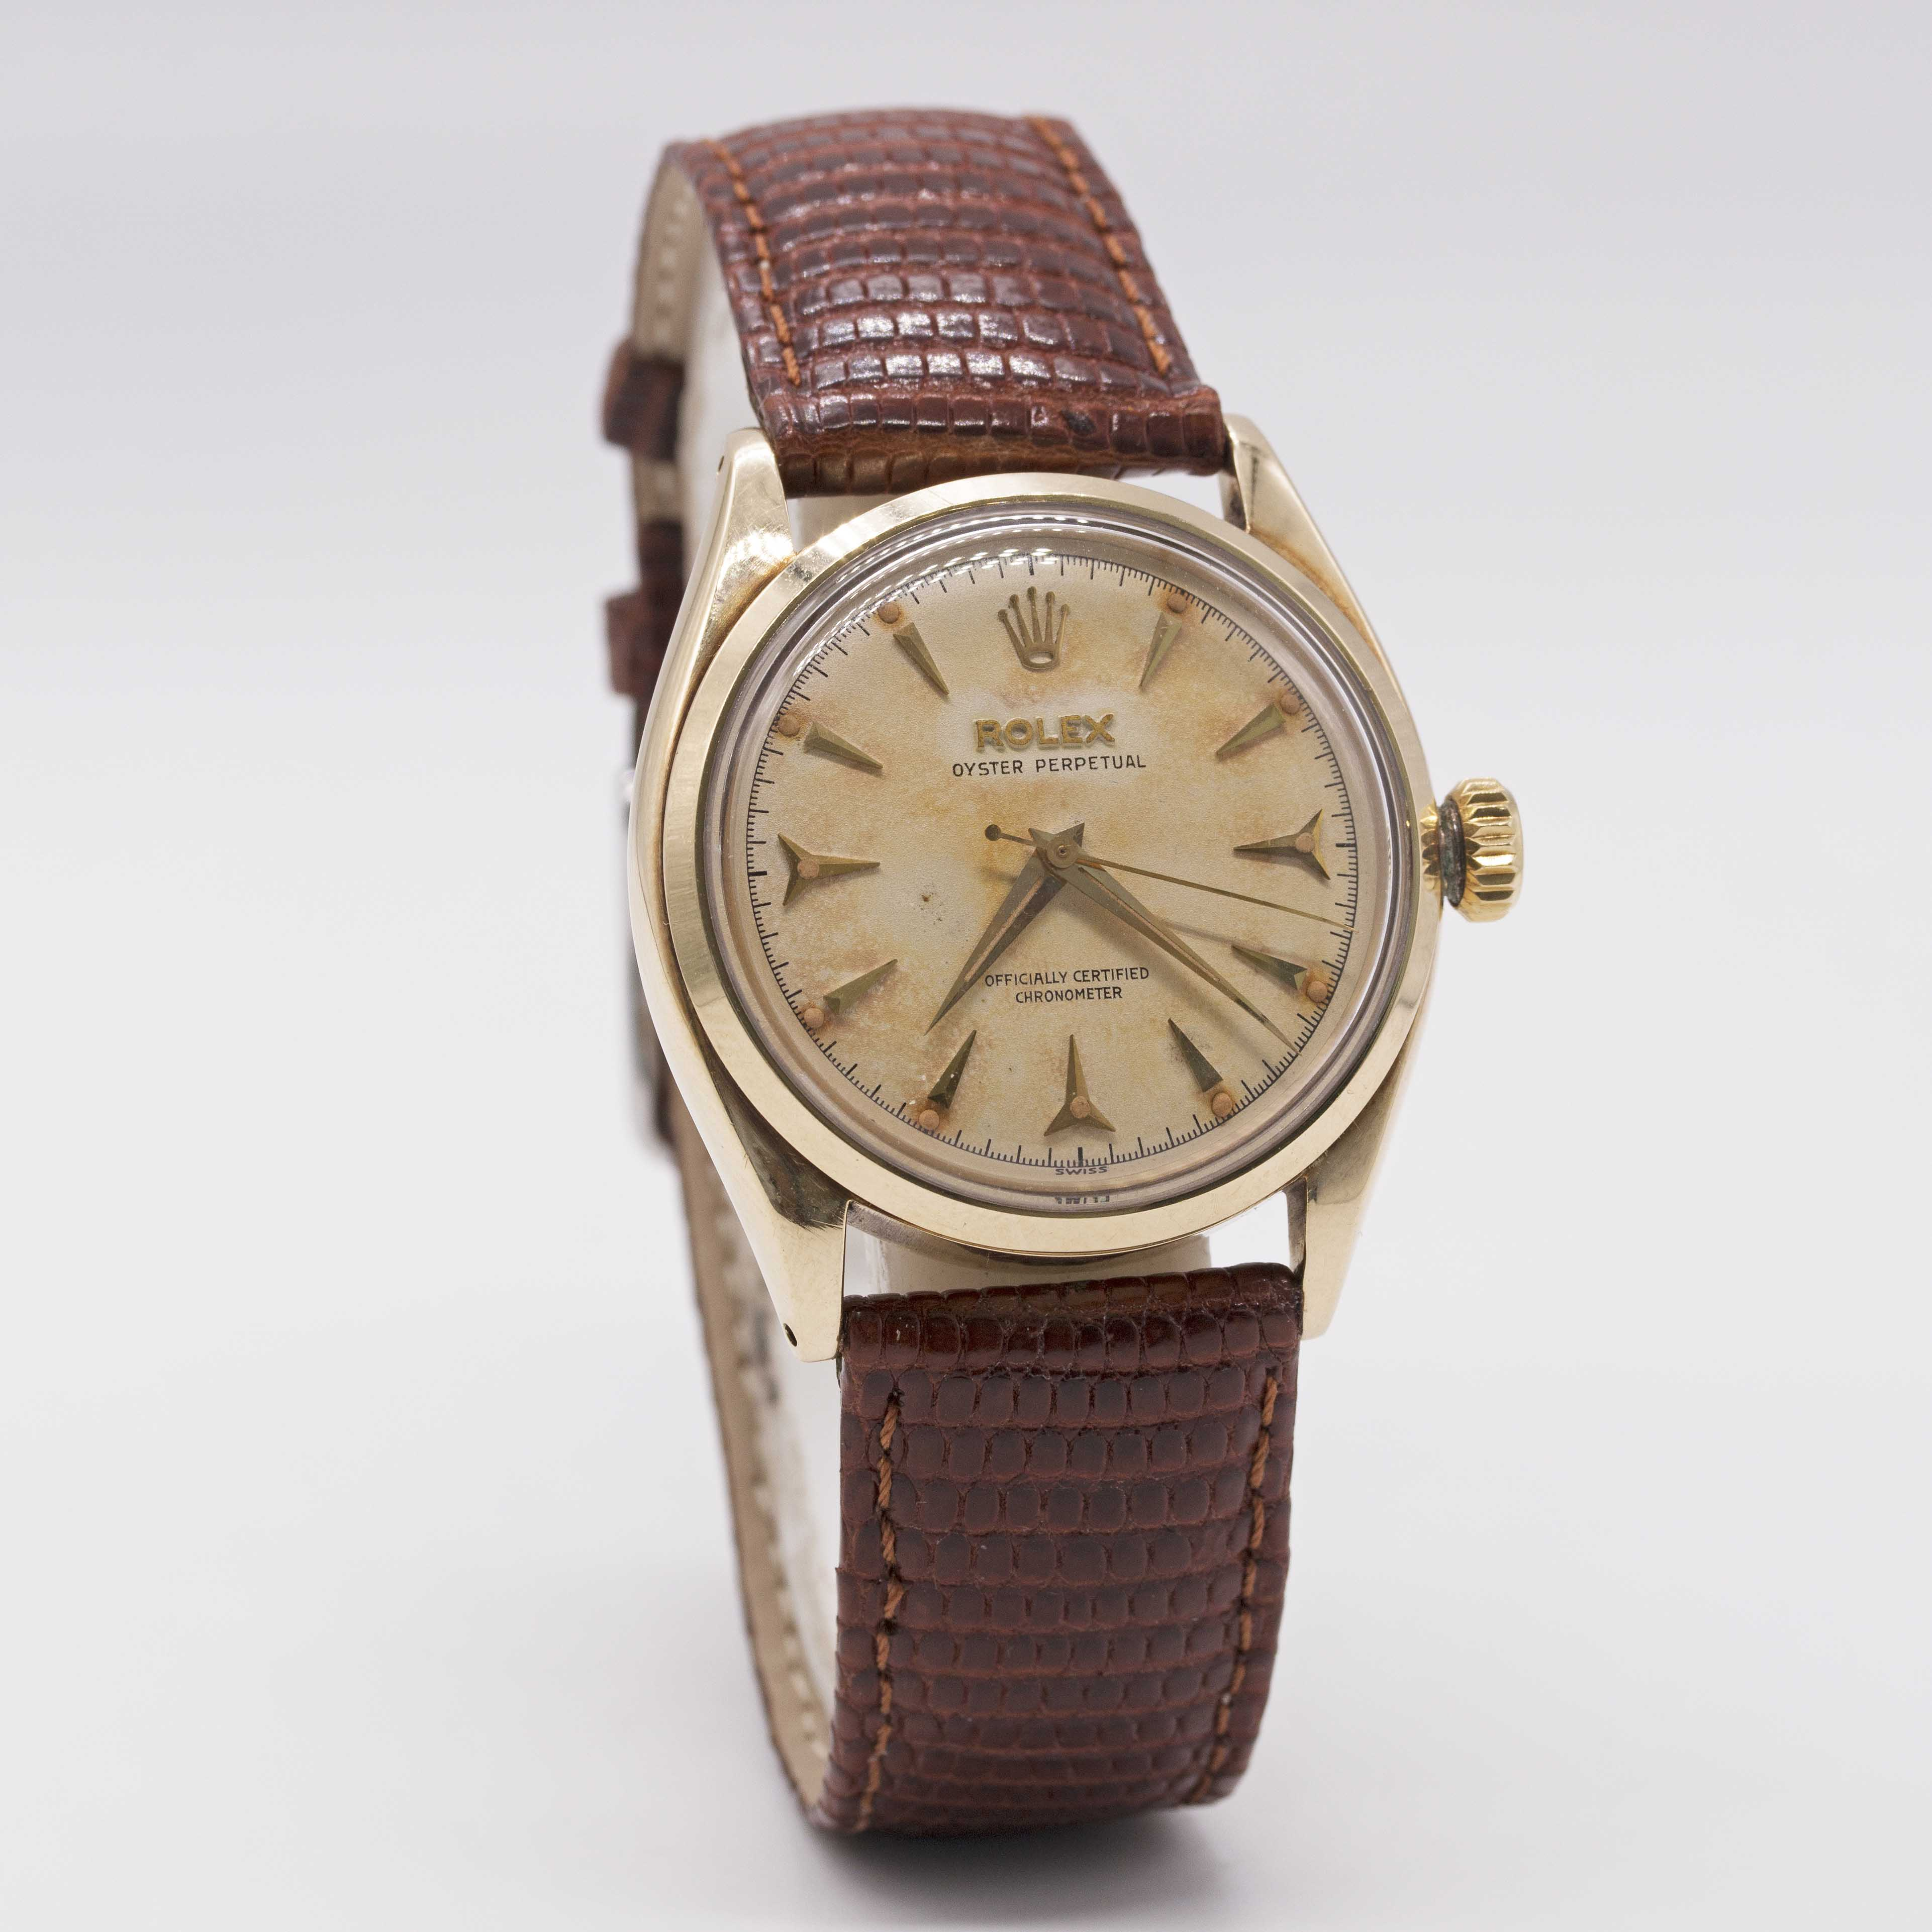 Lot 25 - A GENTLEMAN'S 14K SOLID GOLD ROLEX OYSTER PERPETUAL WRIST WATCH CIRCA 1954, REF. 6584 WITH SILVER ""